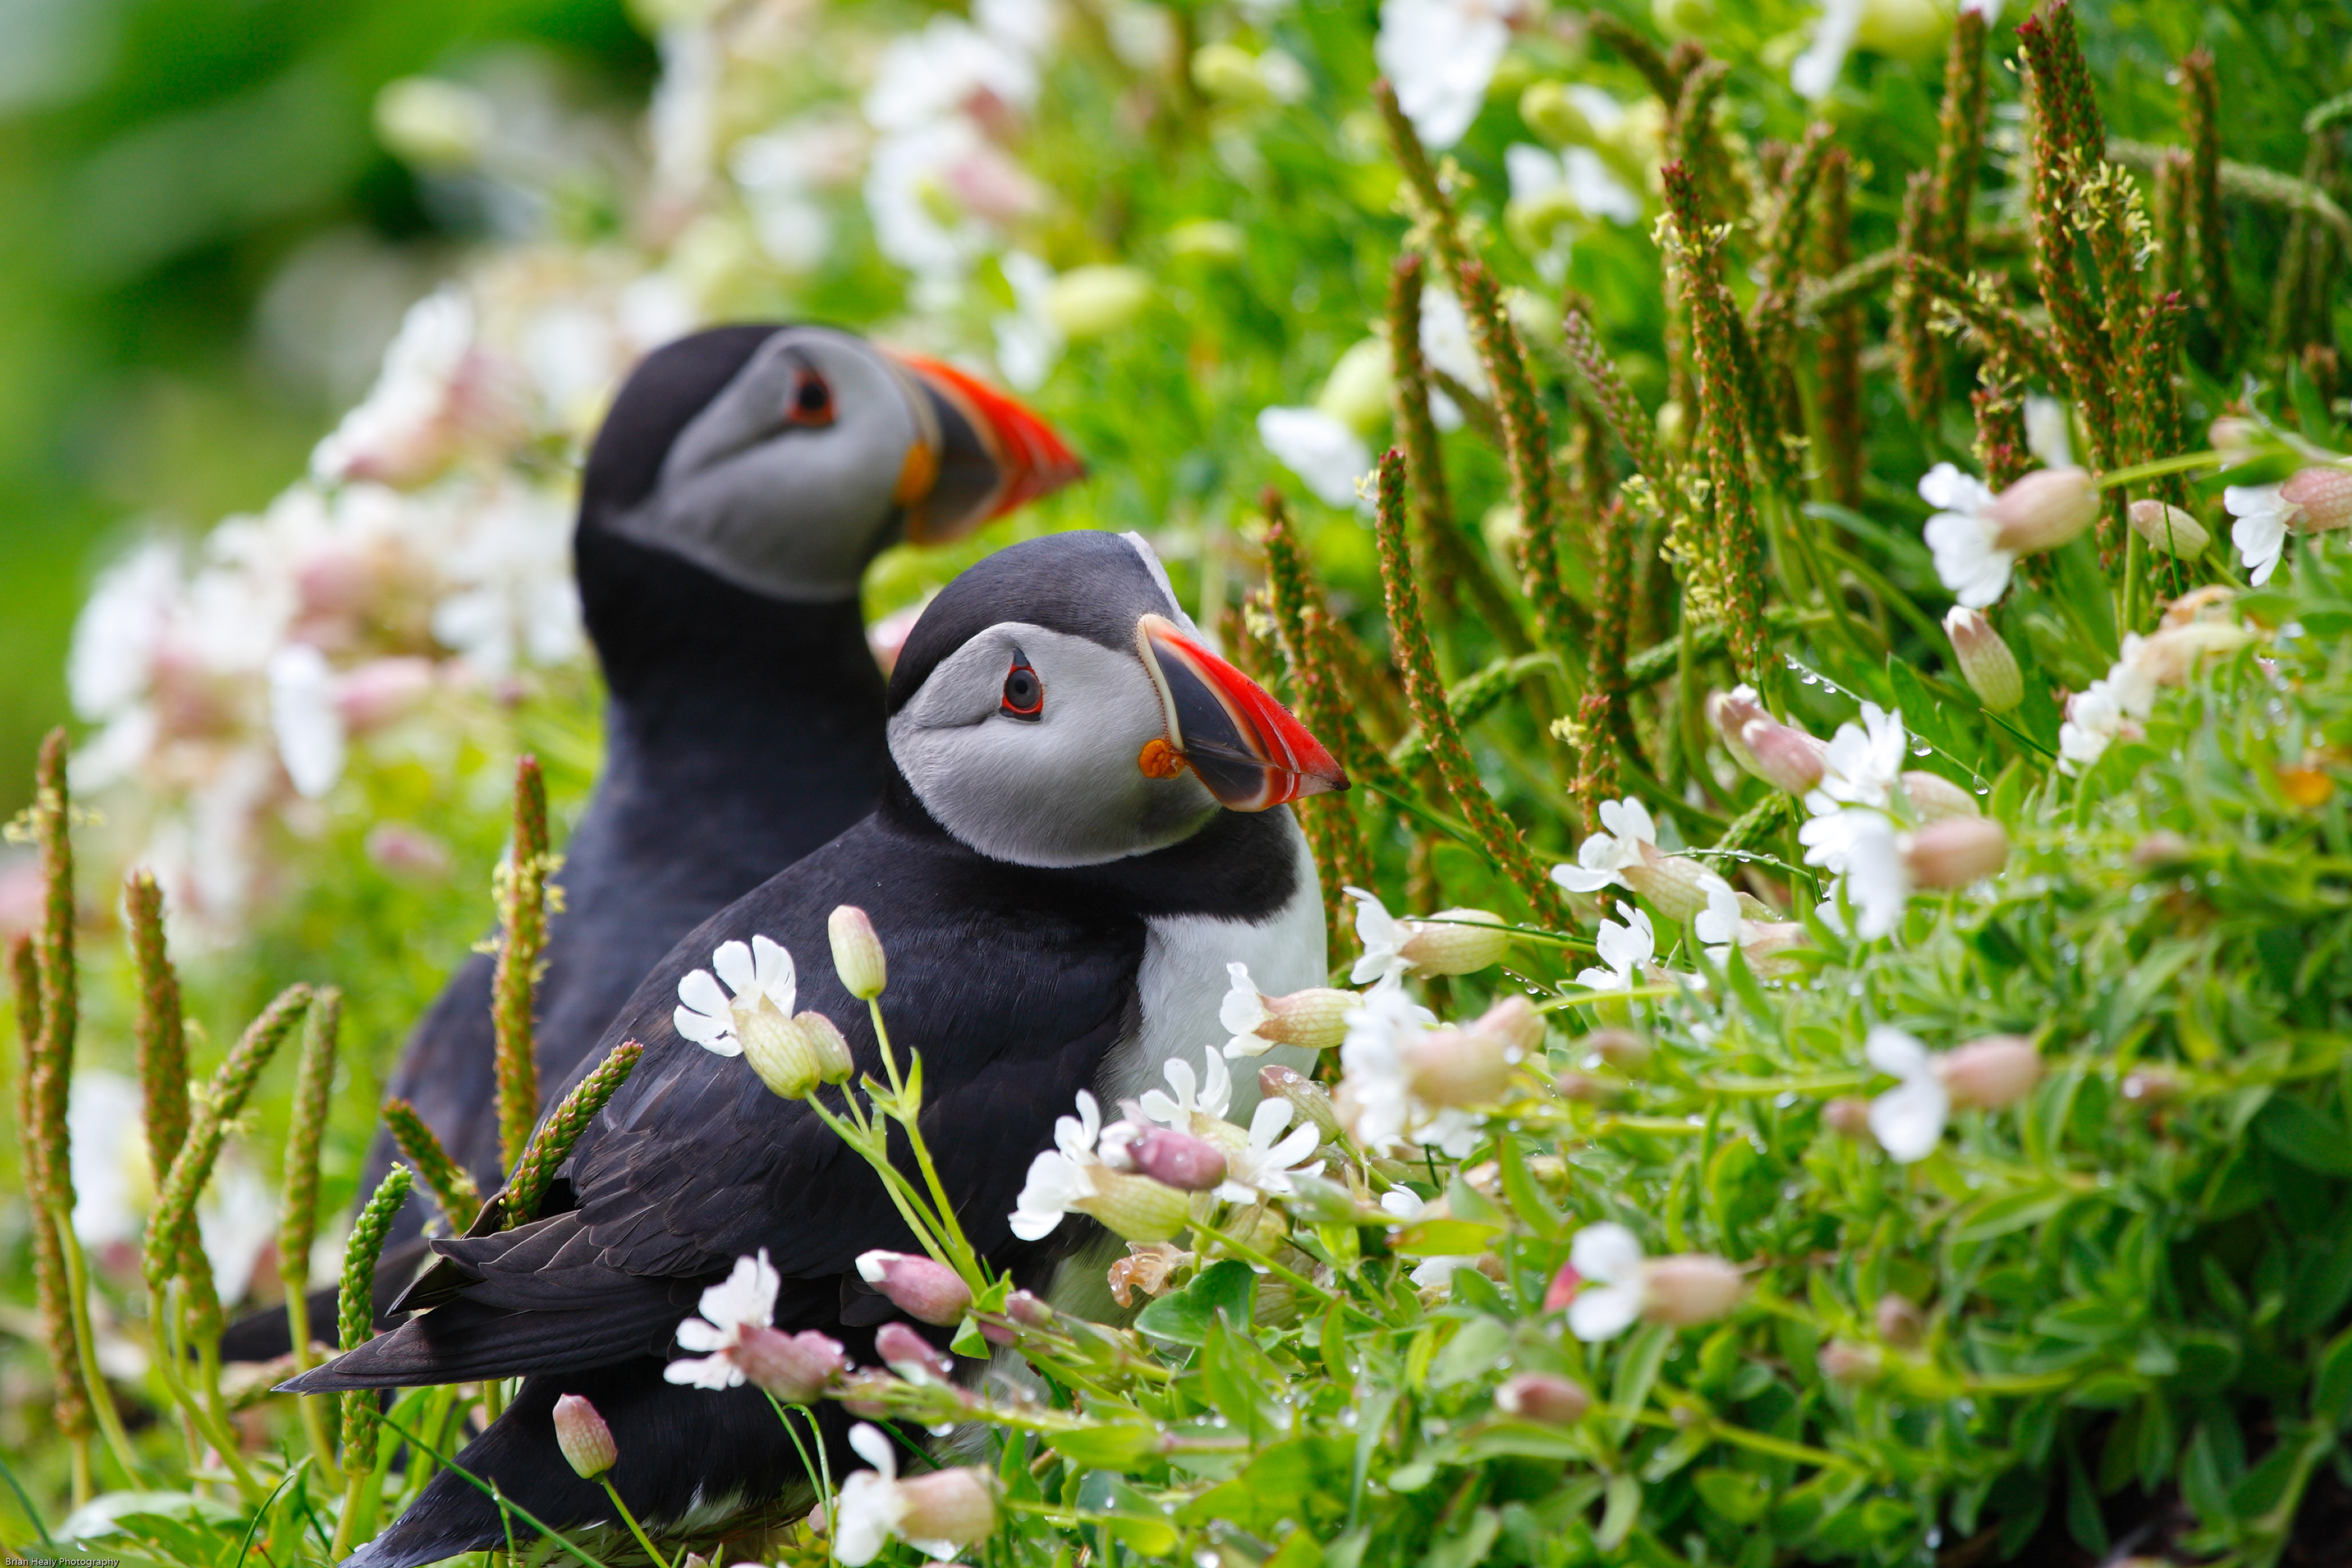 Puffin 4k ultra hd wallpaper and background image - Animal and bird hd wallpaper ...